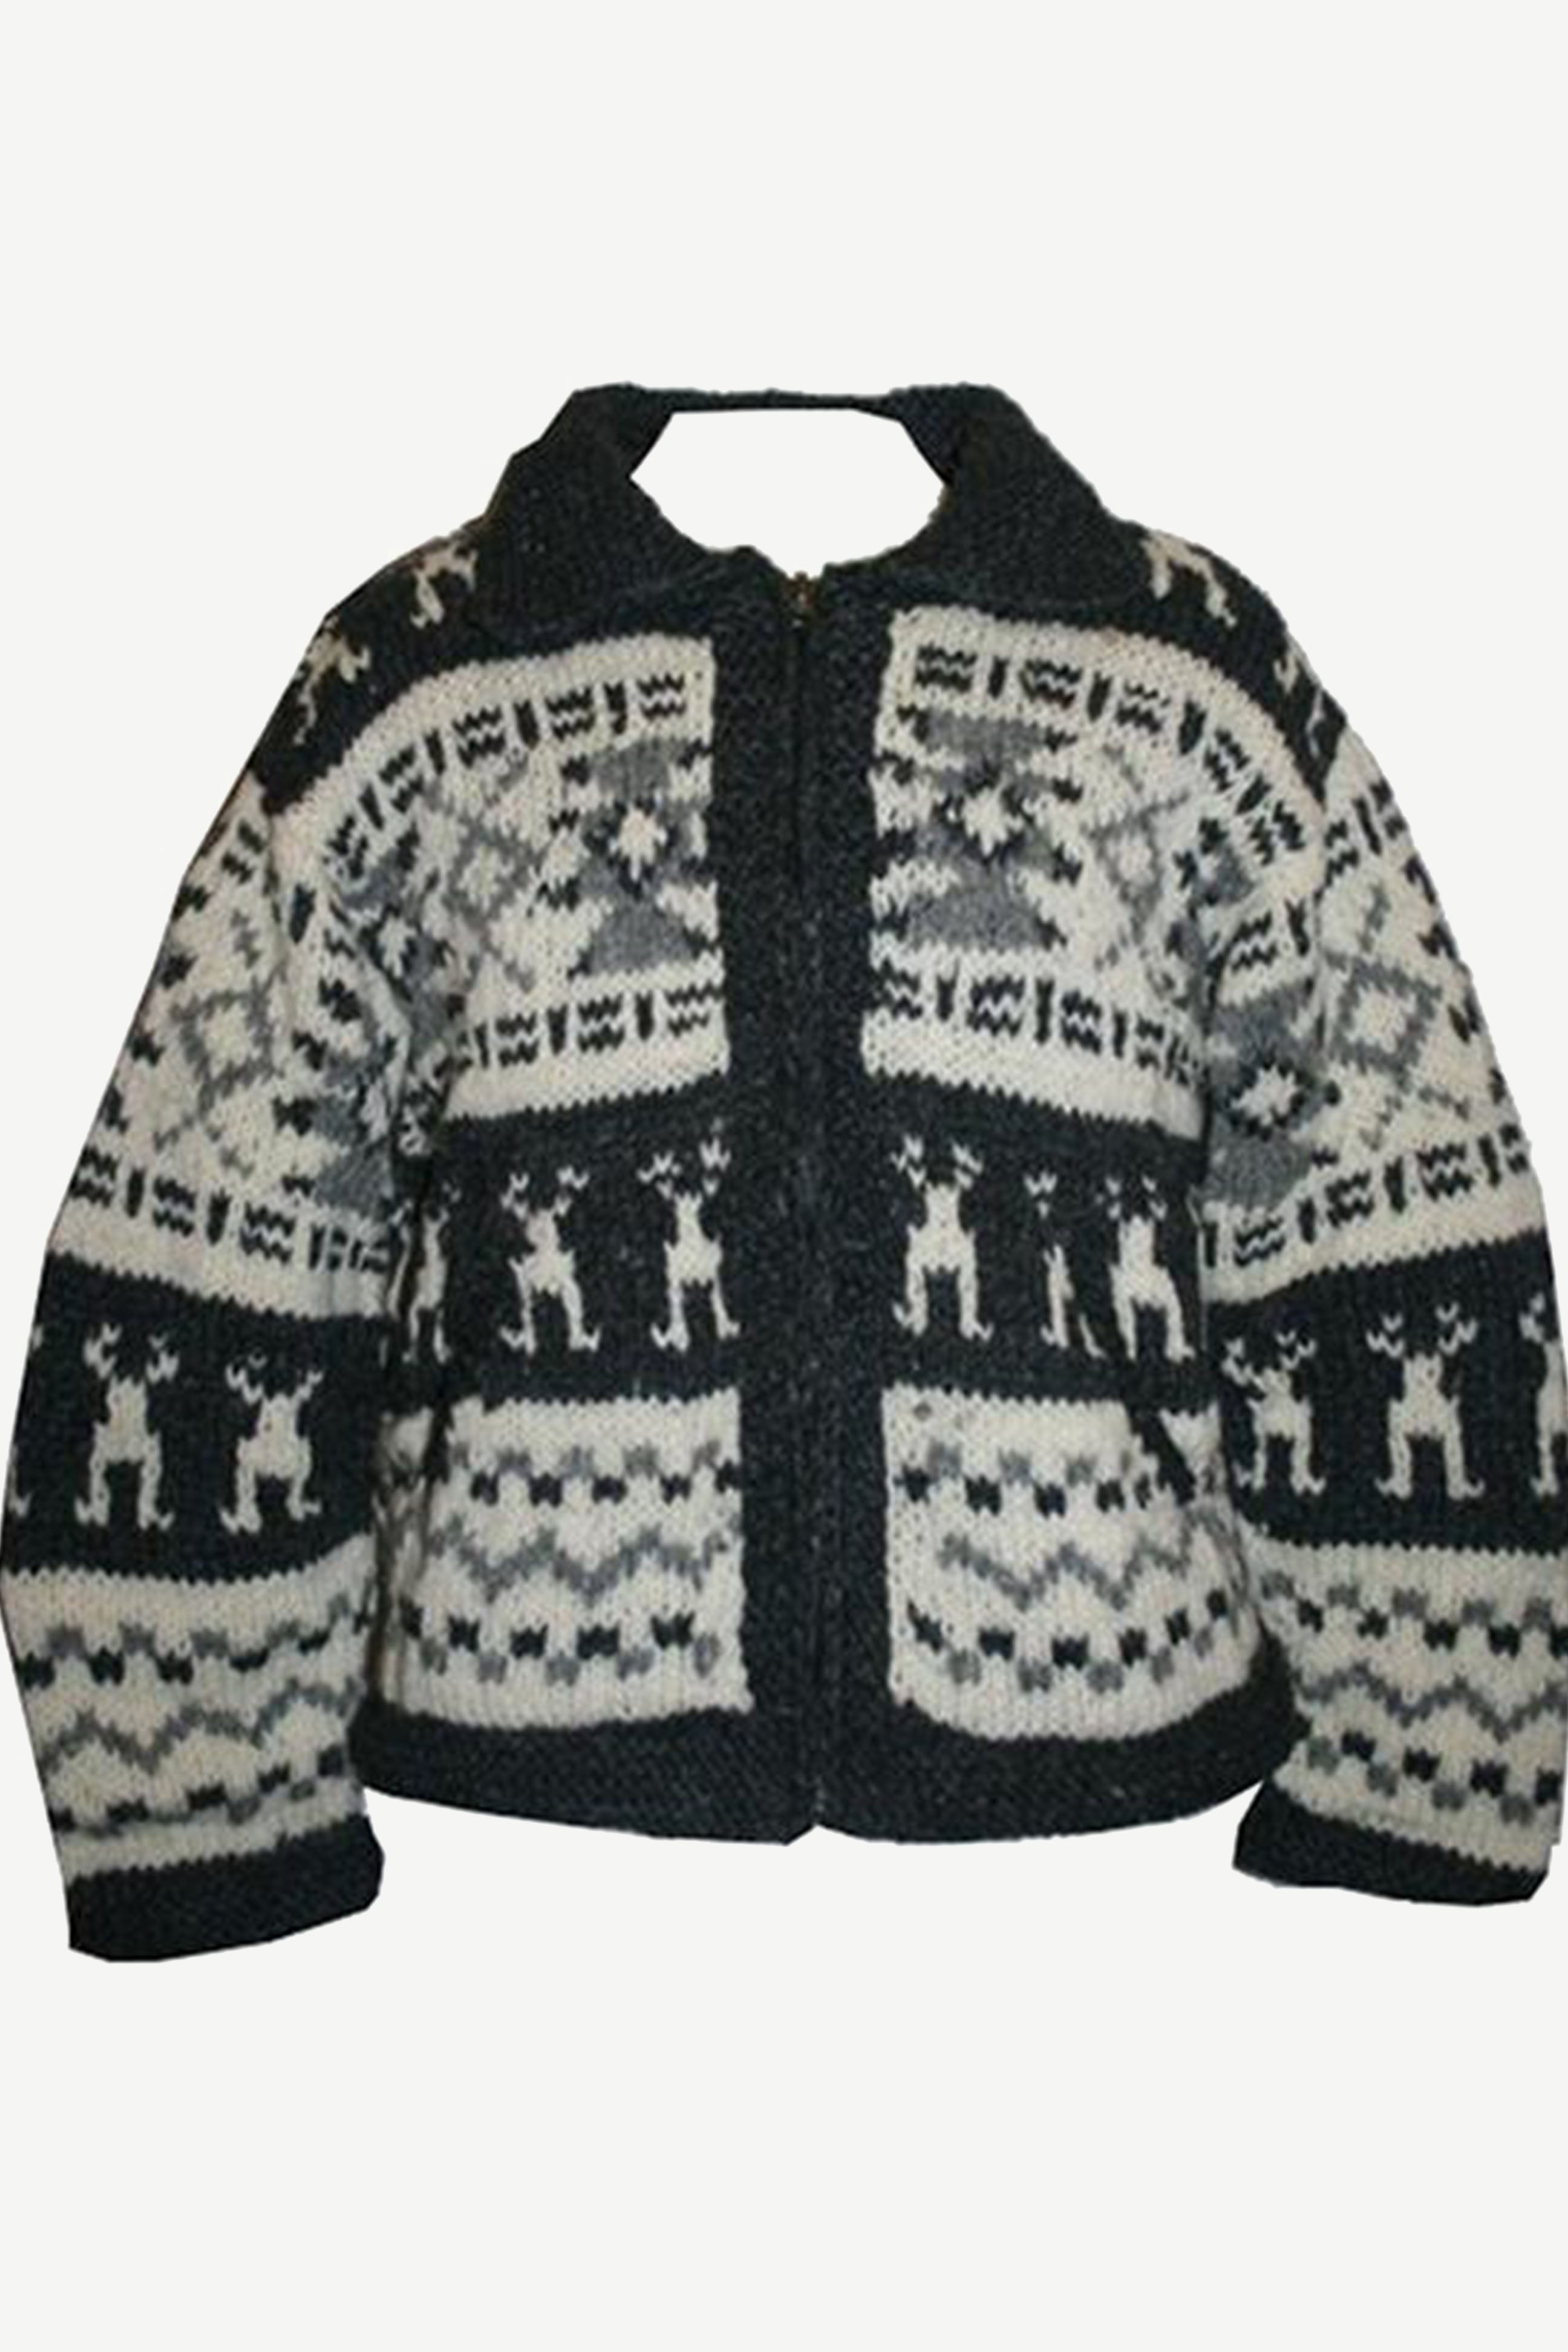 WJ 08 Nepal Highland Sherpa Lambs Wool Knitted Cardigan Sweater